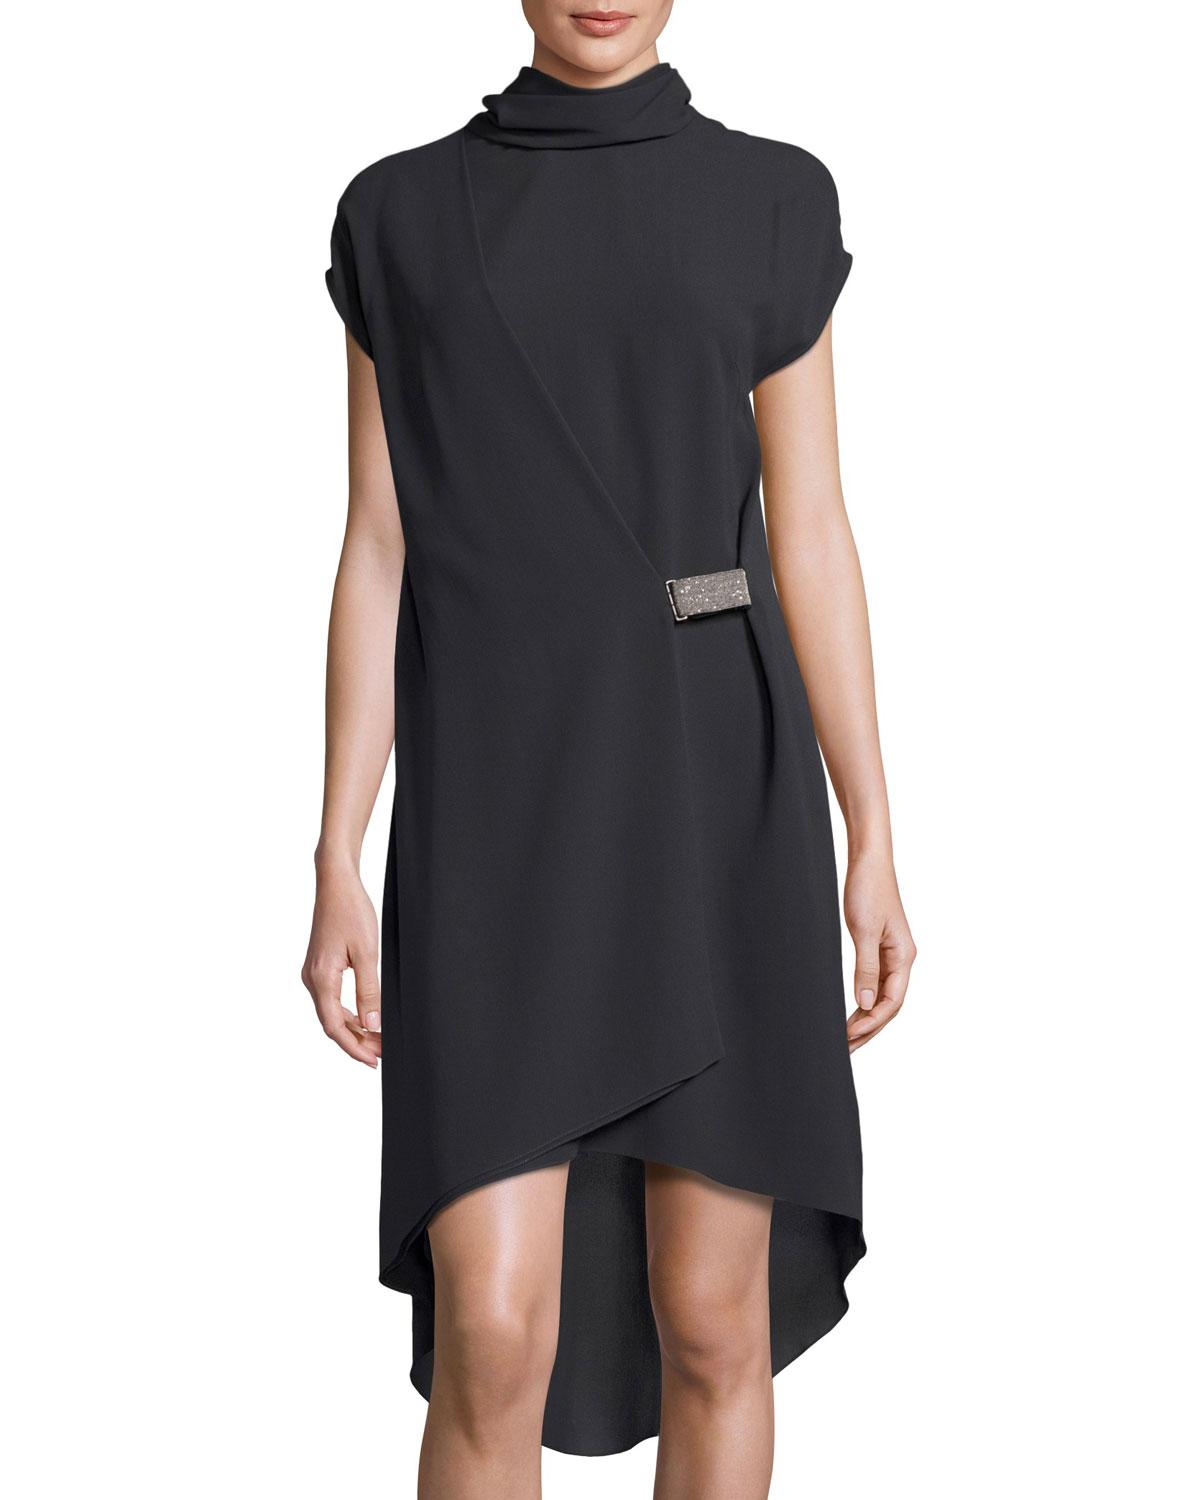 Shop from the world's largest selection and best deals for Short Sleeve Turtleneck Black Dresses for Women. Shop with confidence on eBay!